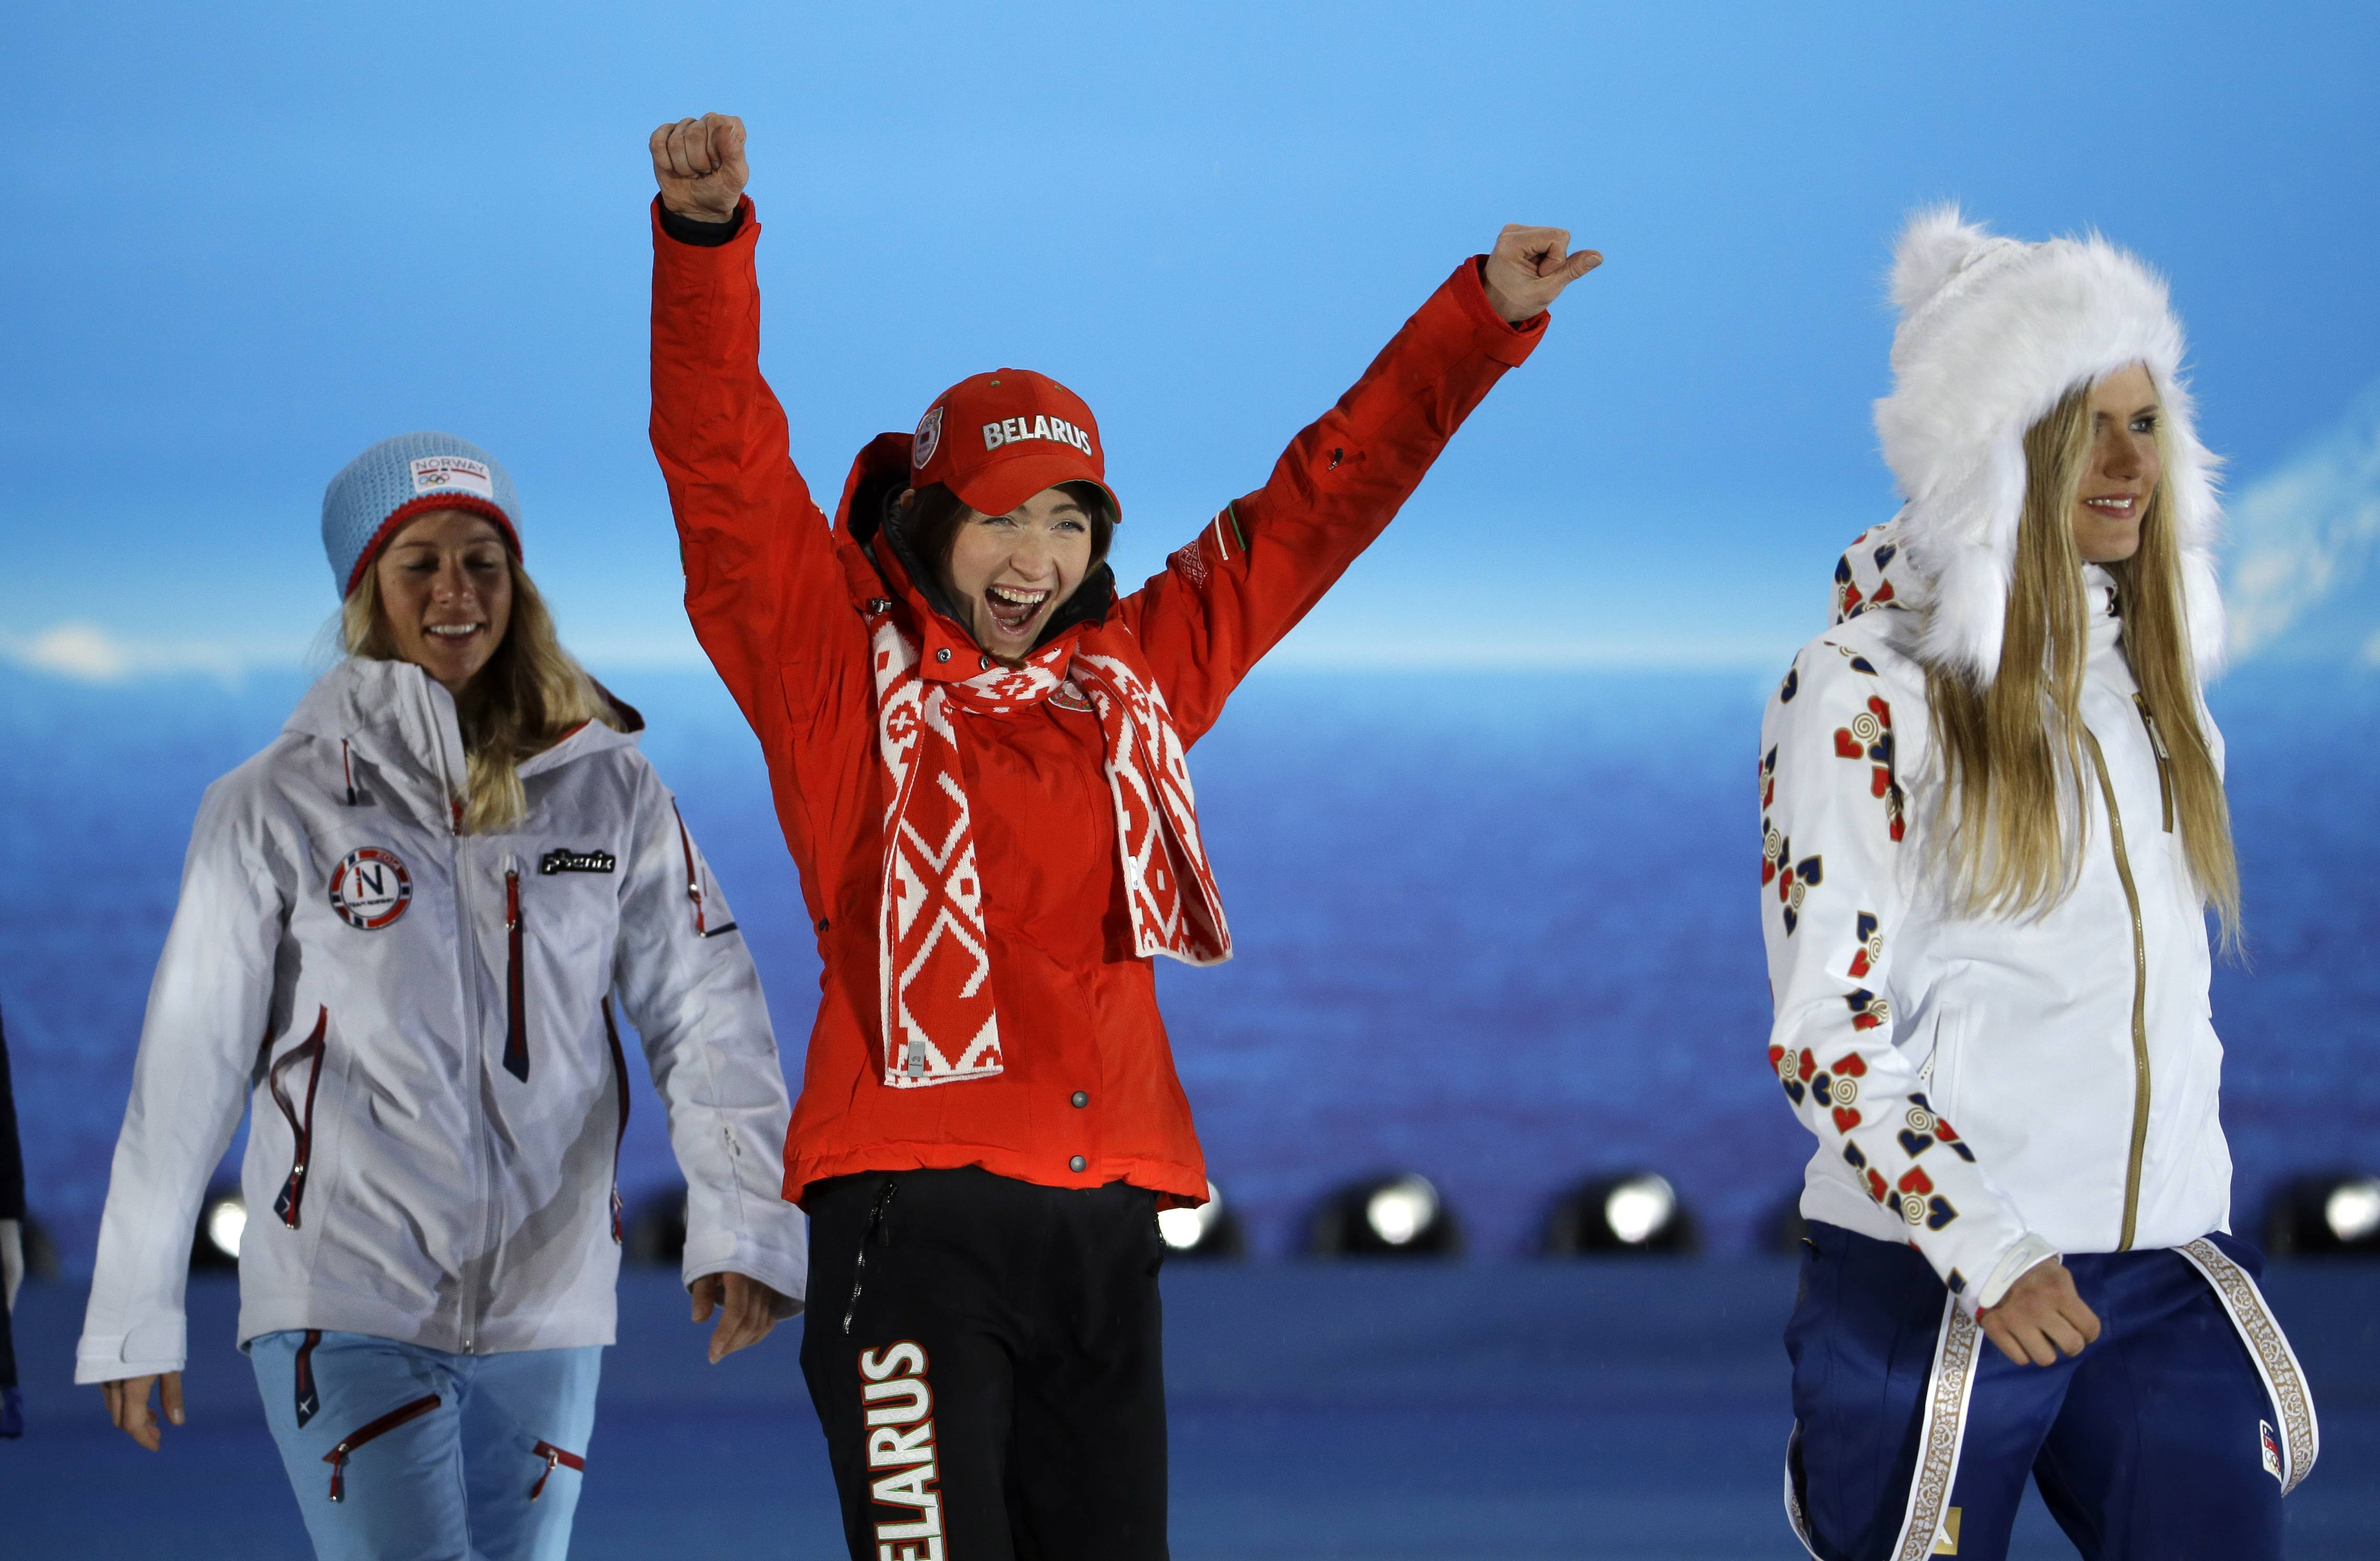 Belarus' Darya Domracheva, the gold medalist in the women's biathlon 12.5K mass start, center, celebrates while walking between bronze medalist Tiril Eckhoff of Norway, left, and silver medalist Gabriela Soukalova of the Czech Republic.